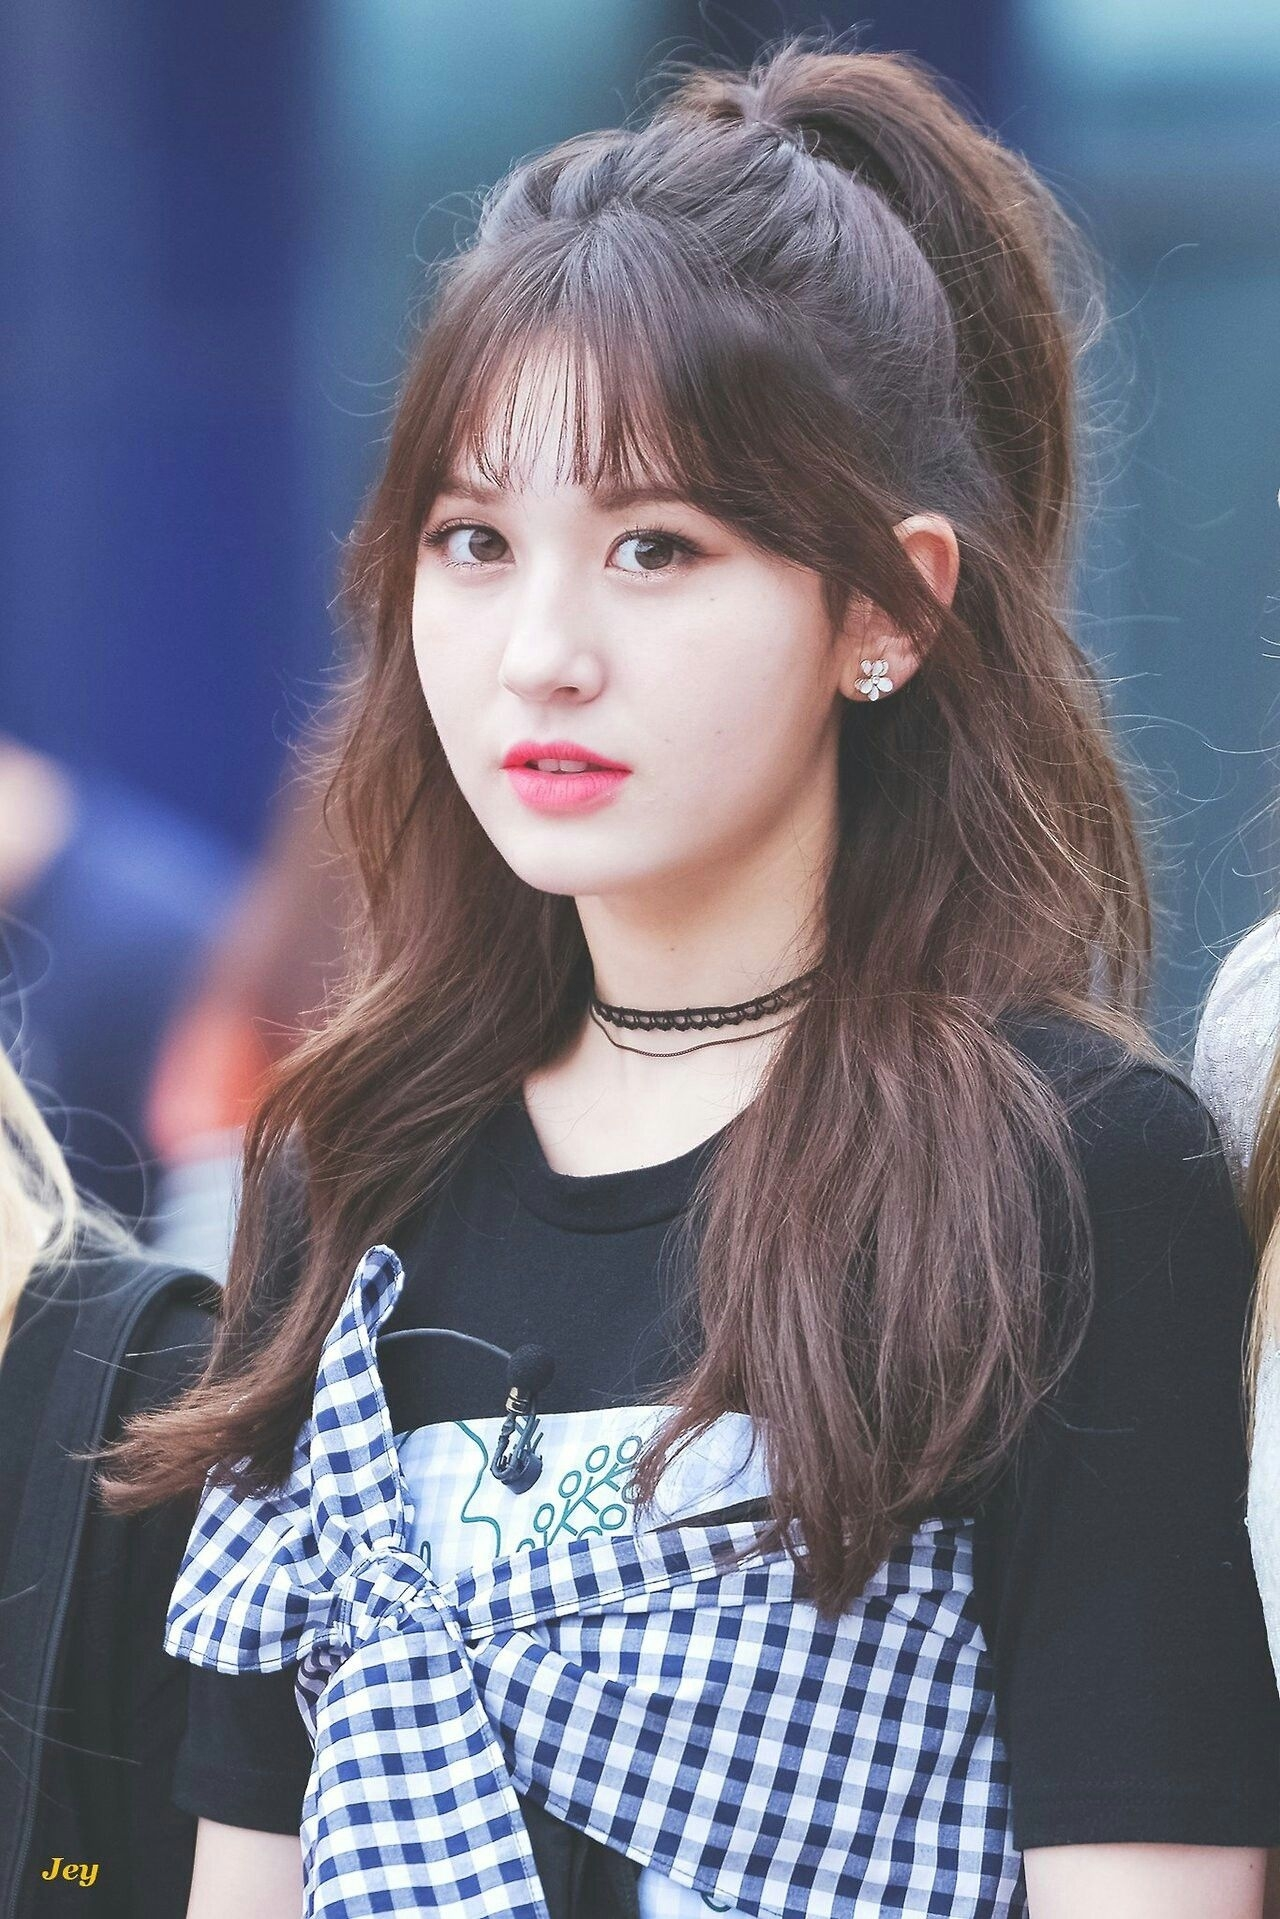 Pin By Im Nayeon On Somi | Jeon Somi, Korean Bangs, Somi in Jeon Somi Natural Hair